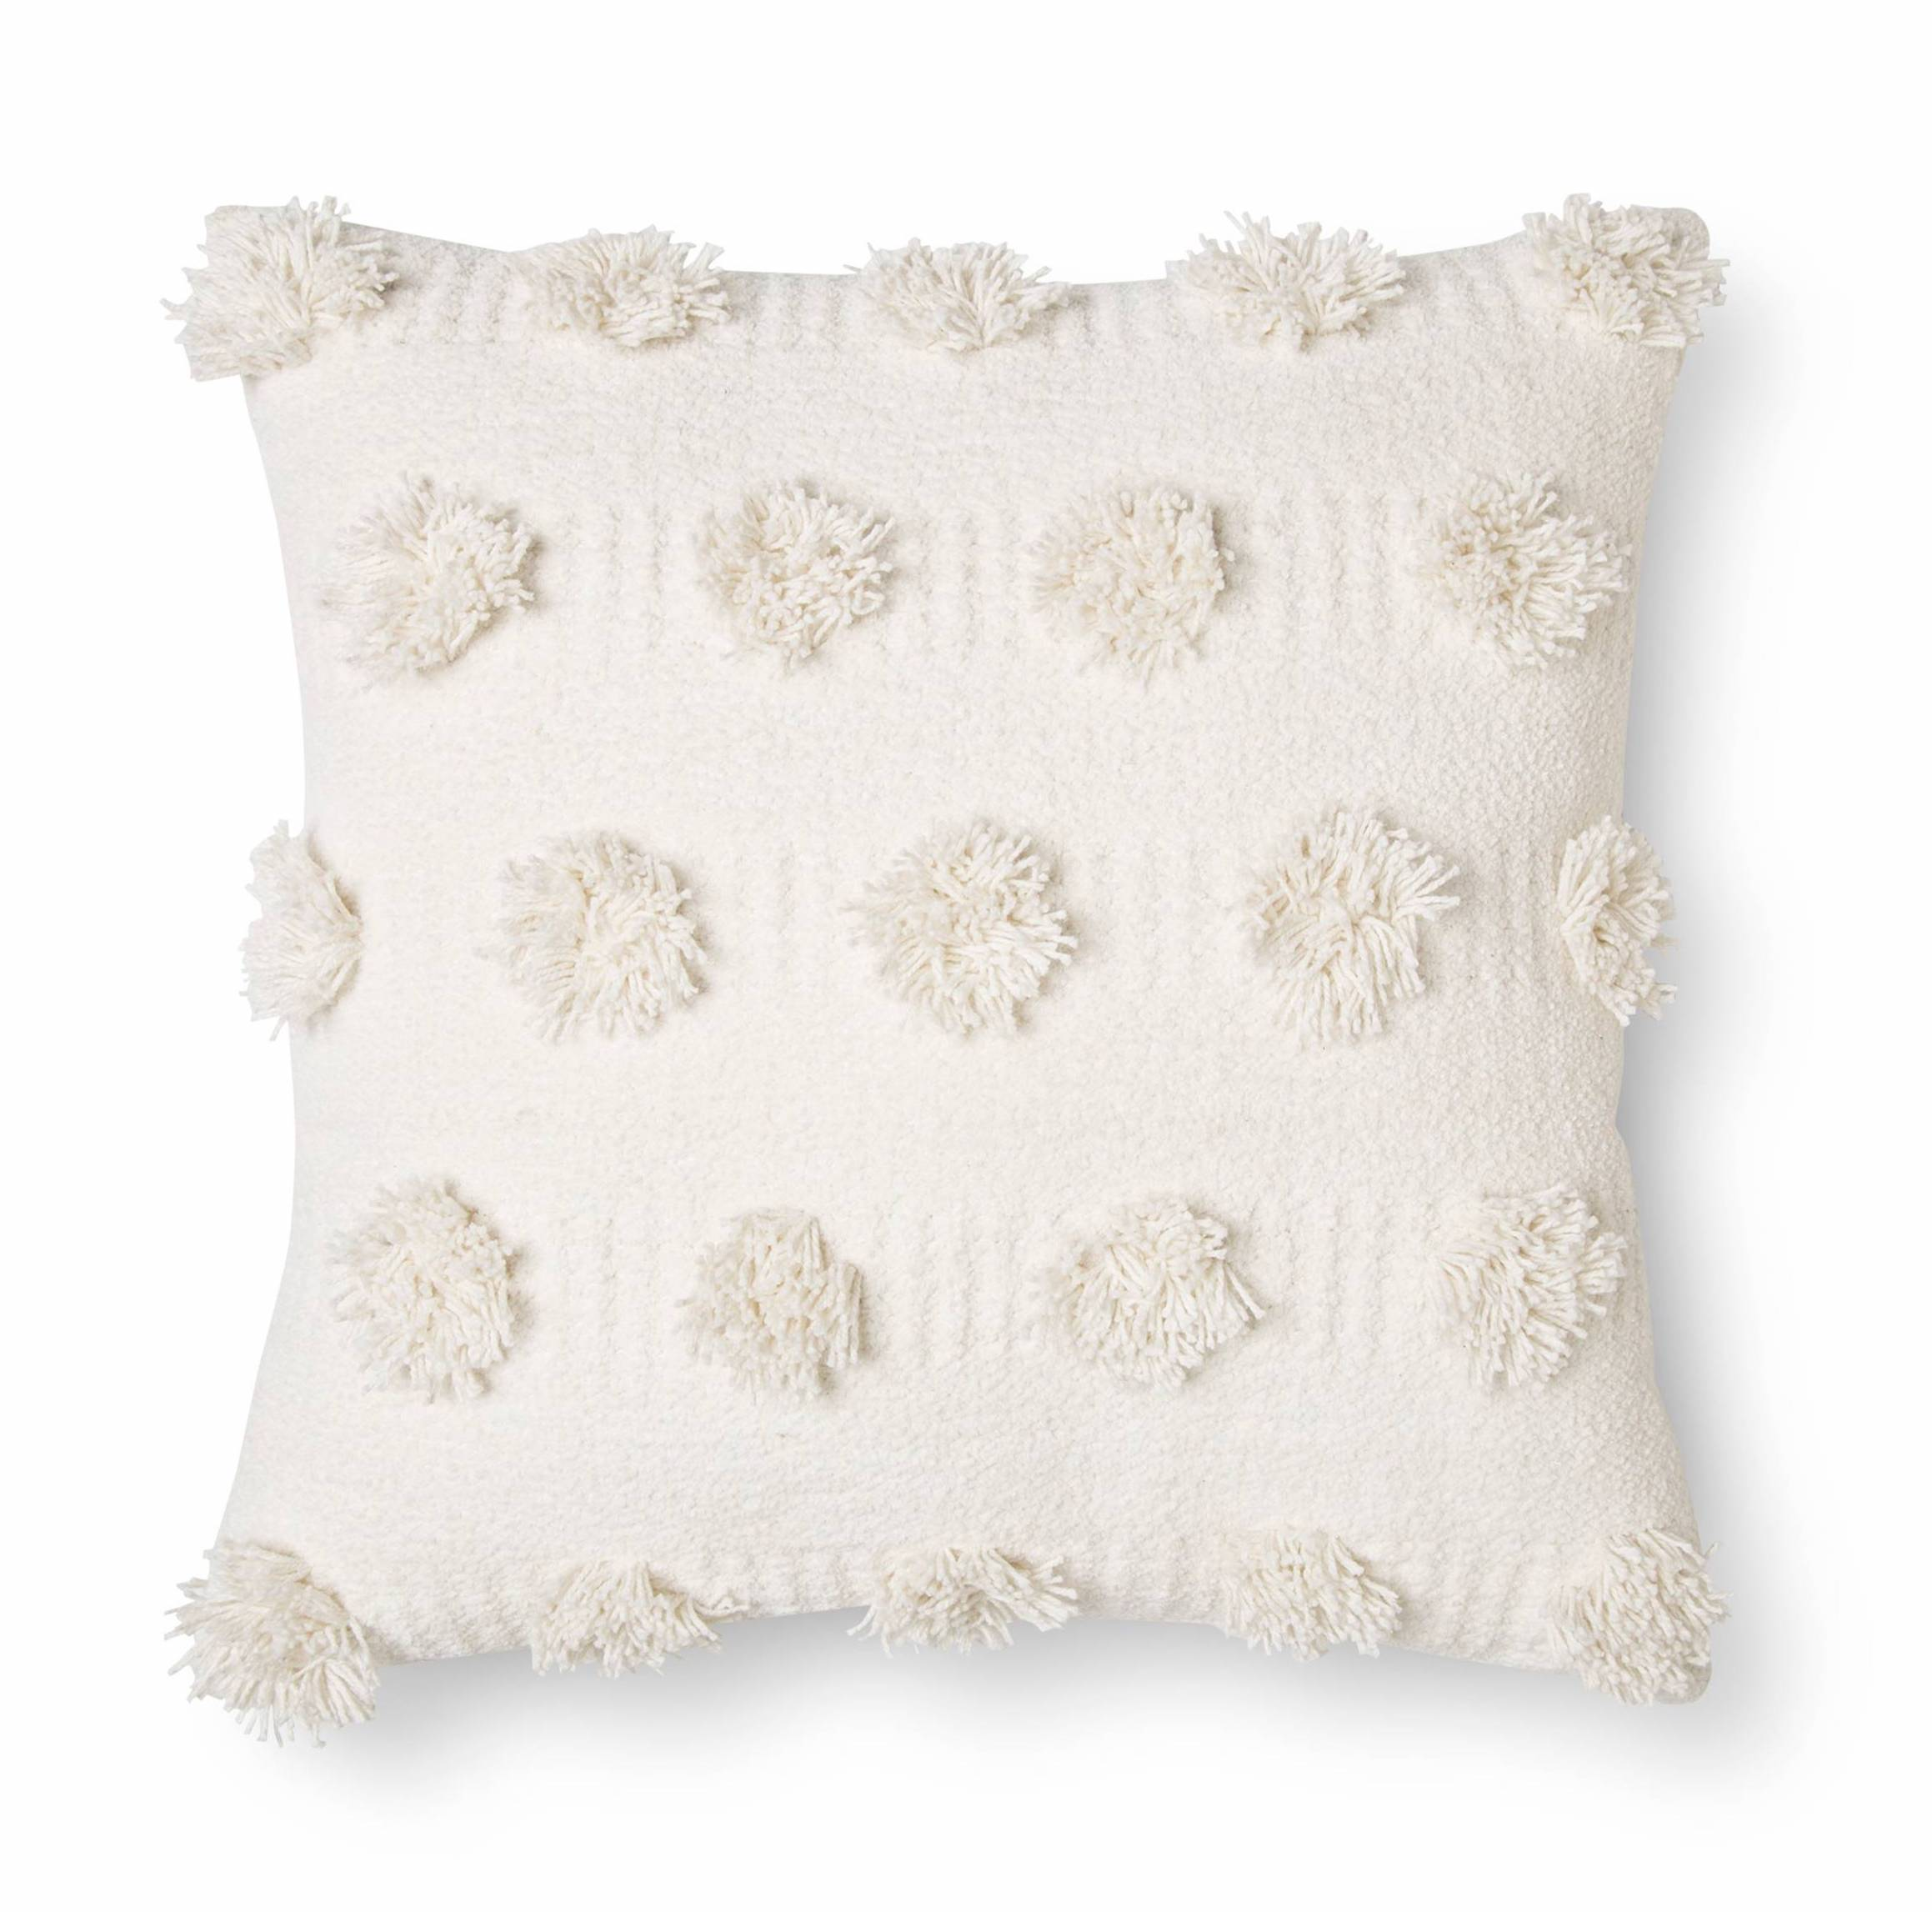 Target Cream pom dot square throw pillow.jpeg